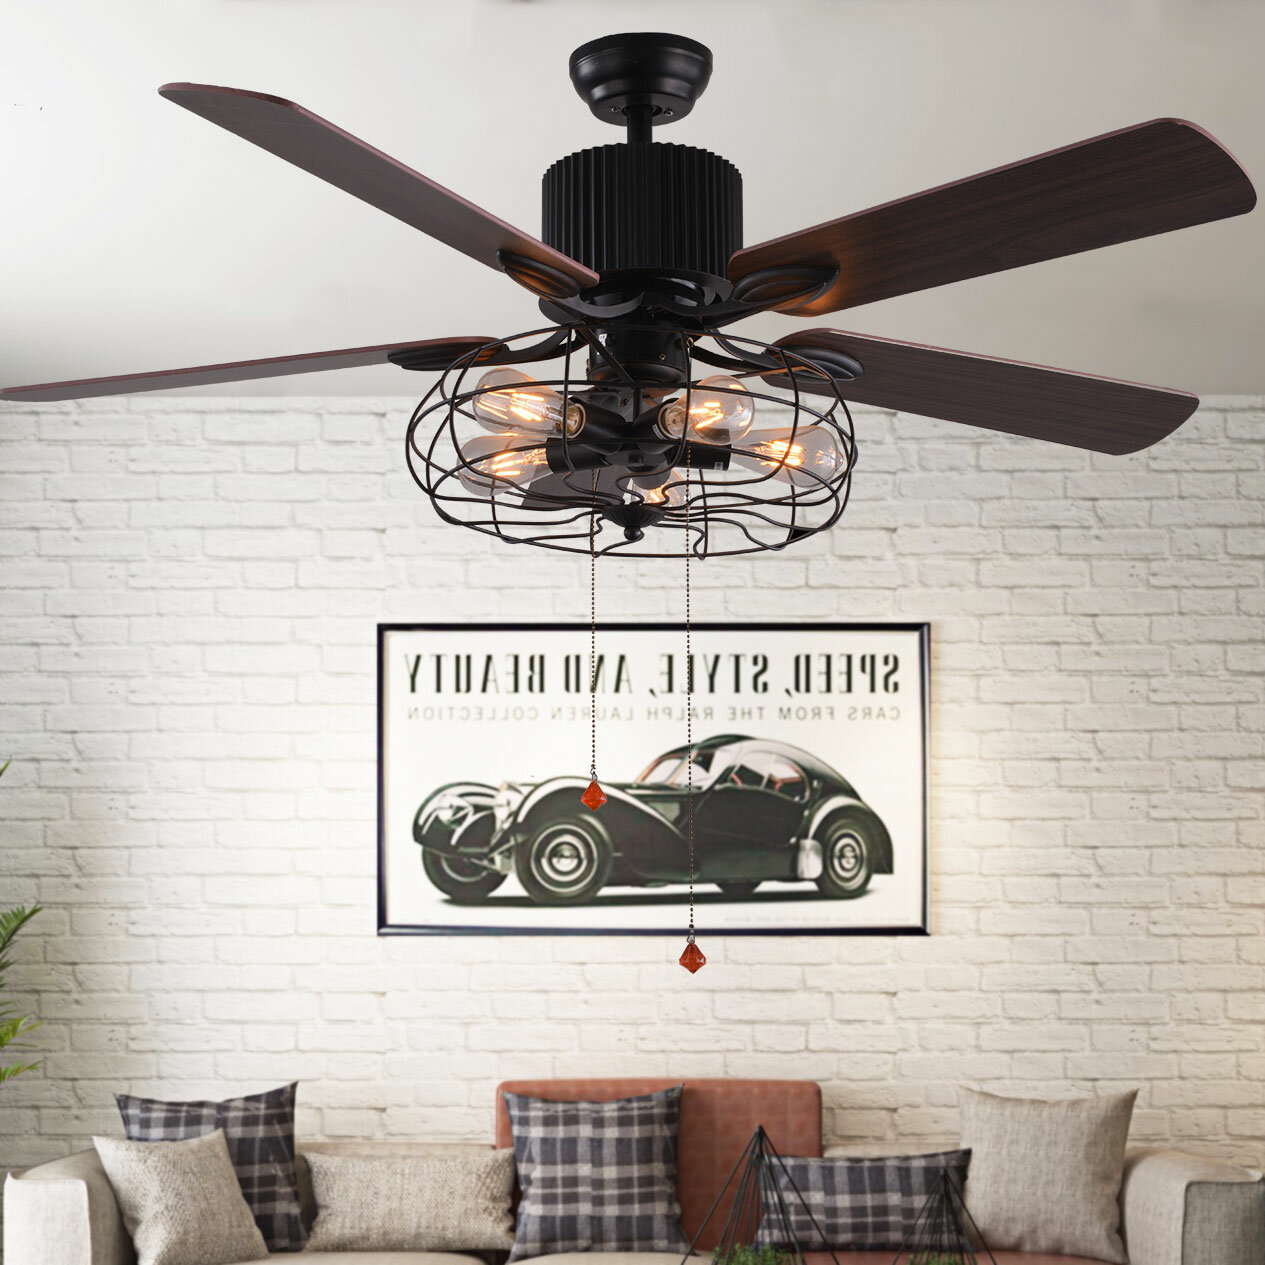 Williston Forge Borg 5 Blade Ceiling Fan With Pull Chain And Light Kit Included Reviews Wayfair